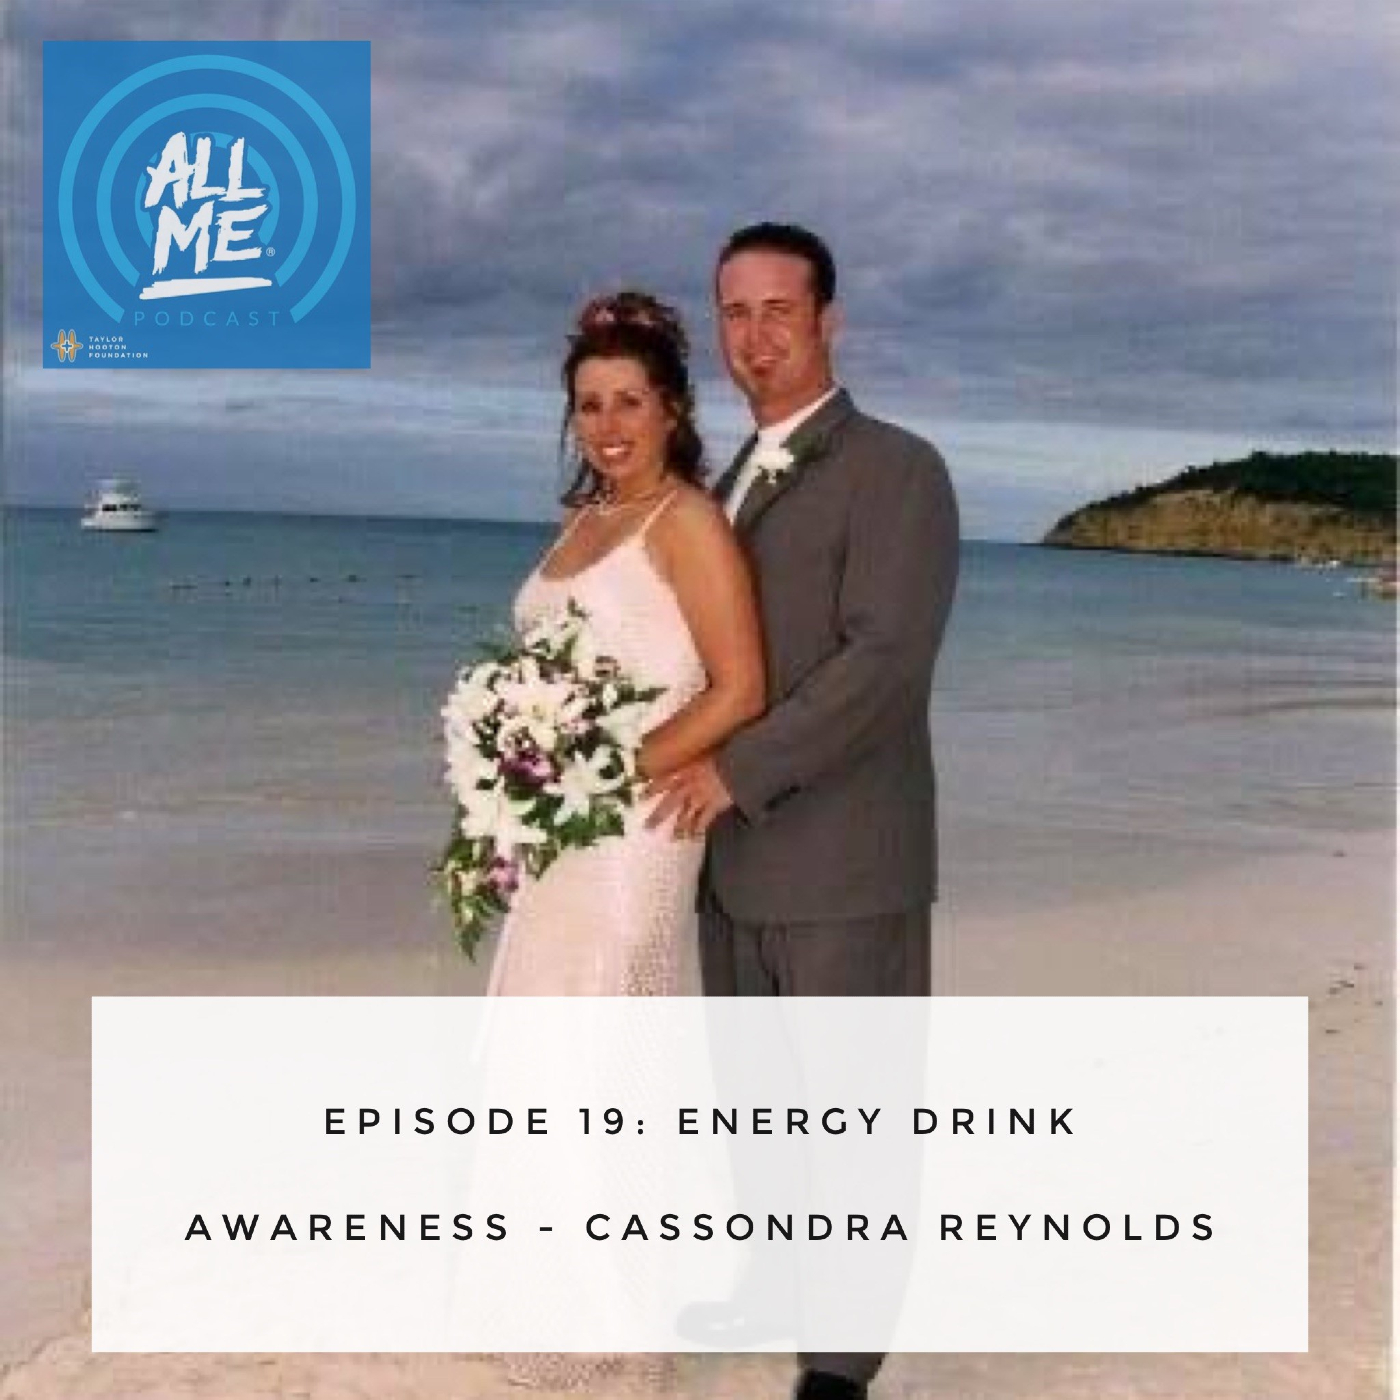 Episode 19: Energy Drink Awareness - Cassondra Reynolds